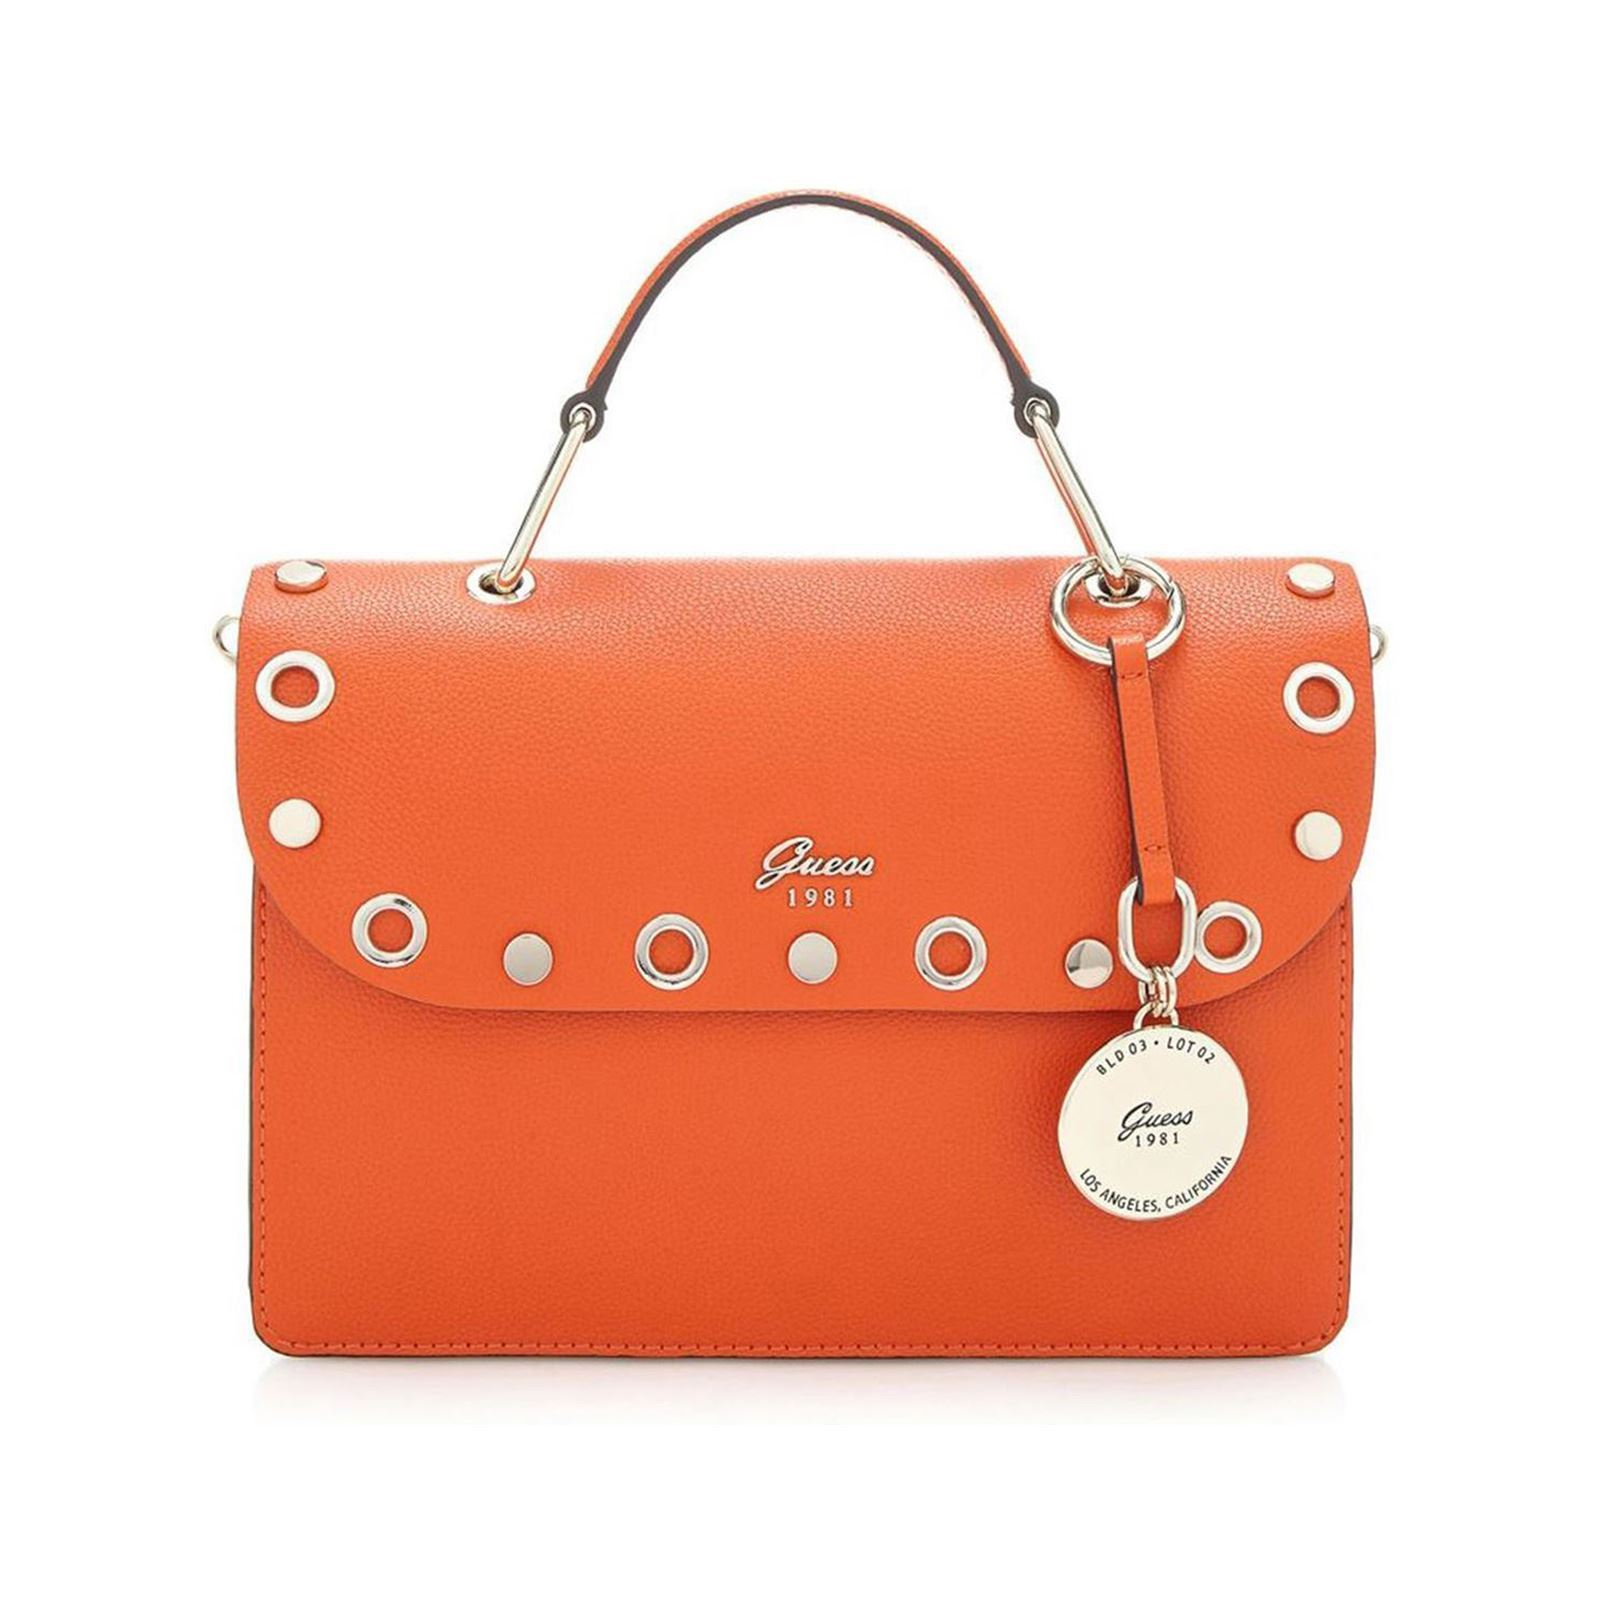 945f8d4d78d Guess Jacqui - Sac à main applications métal - orange